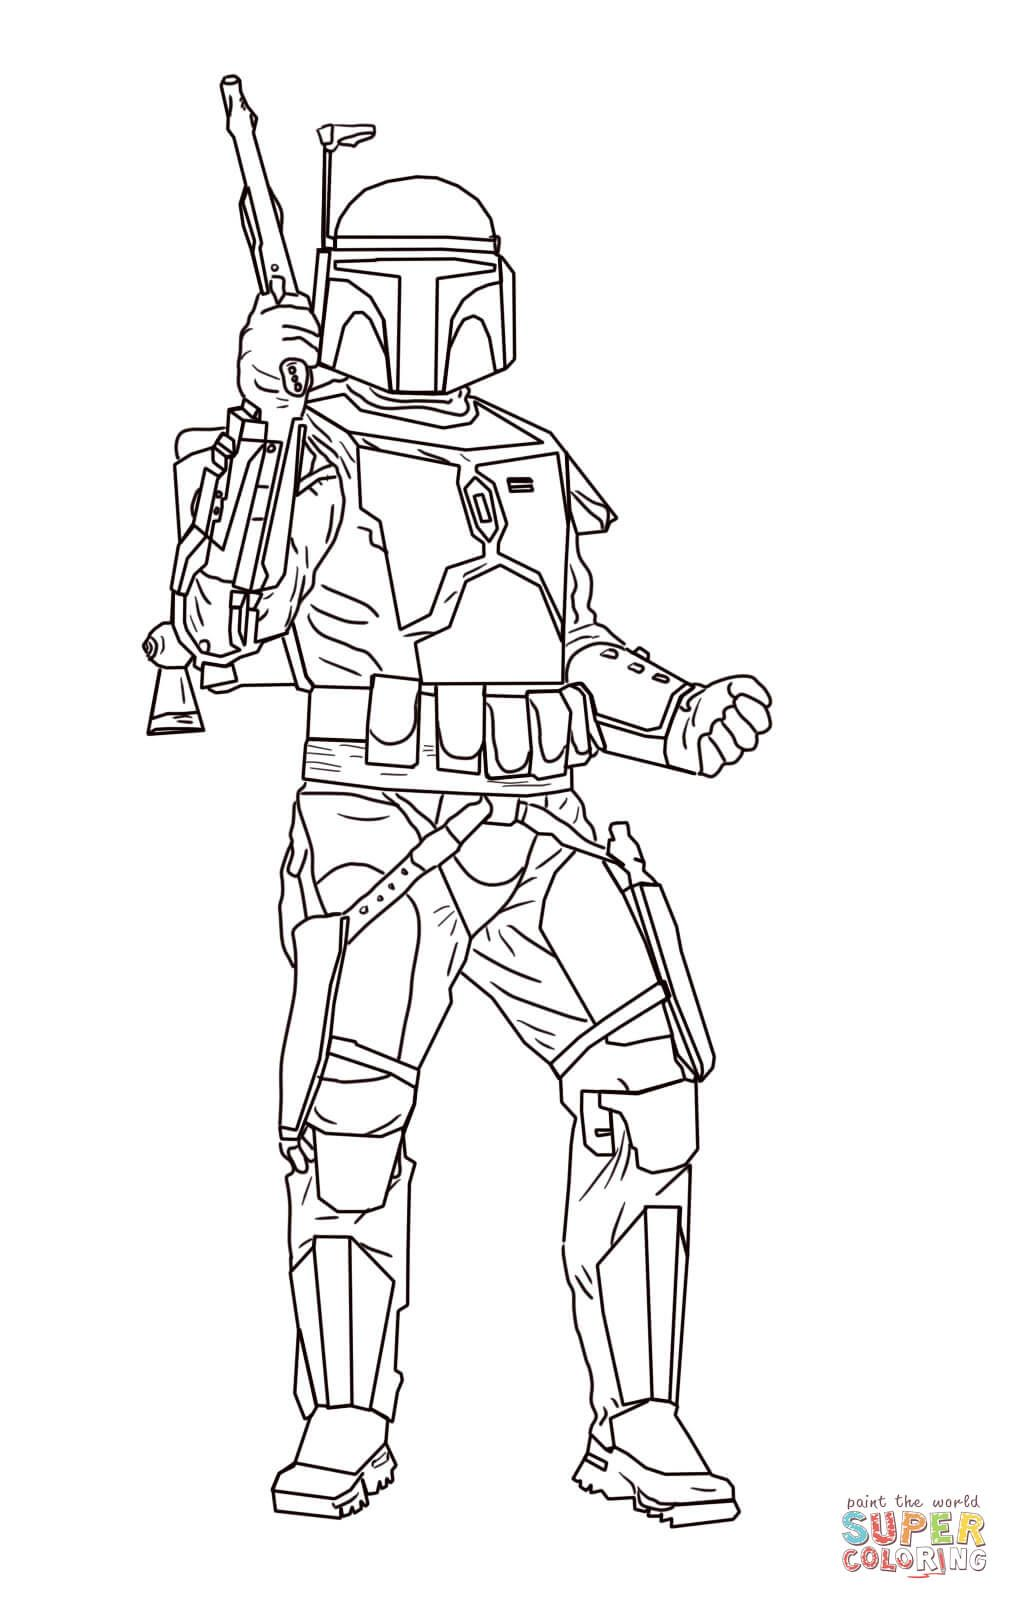 Jango Fett Super Coloring Lineart Star Wars Disney Star